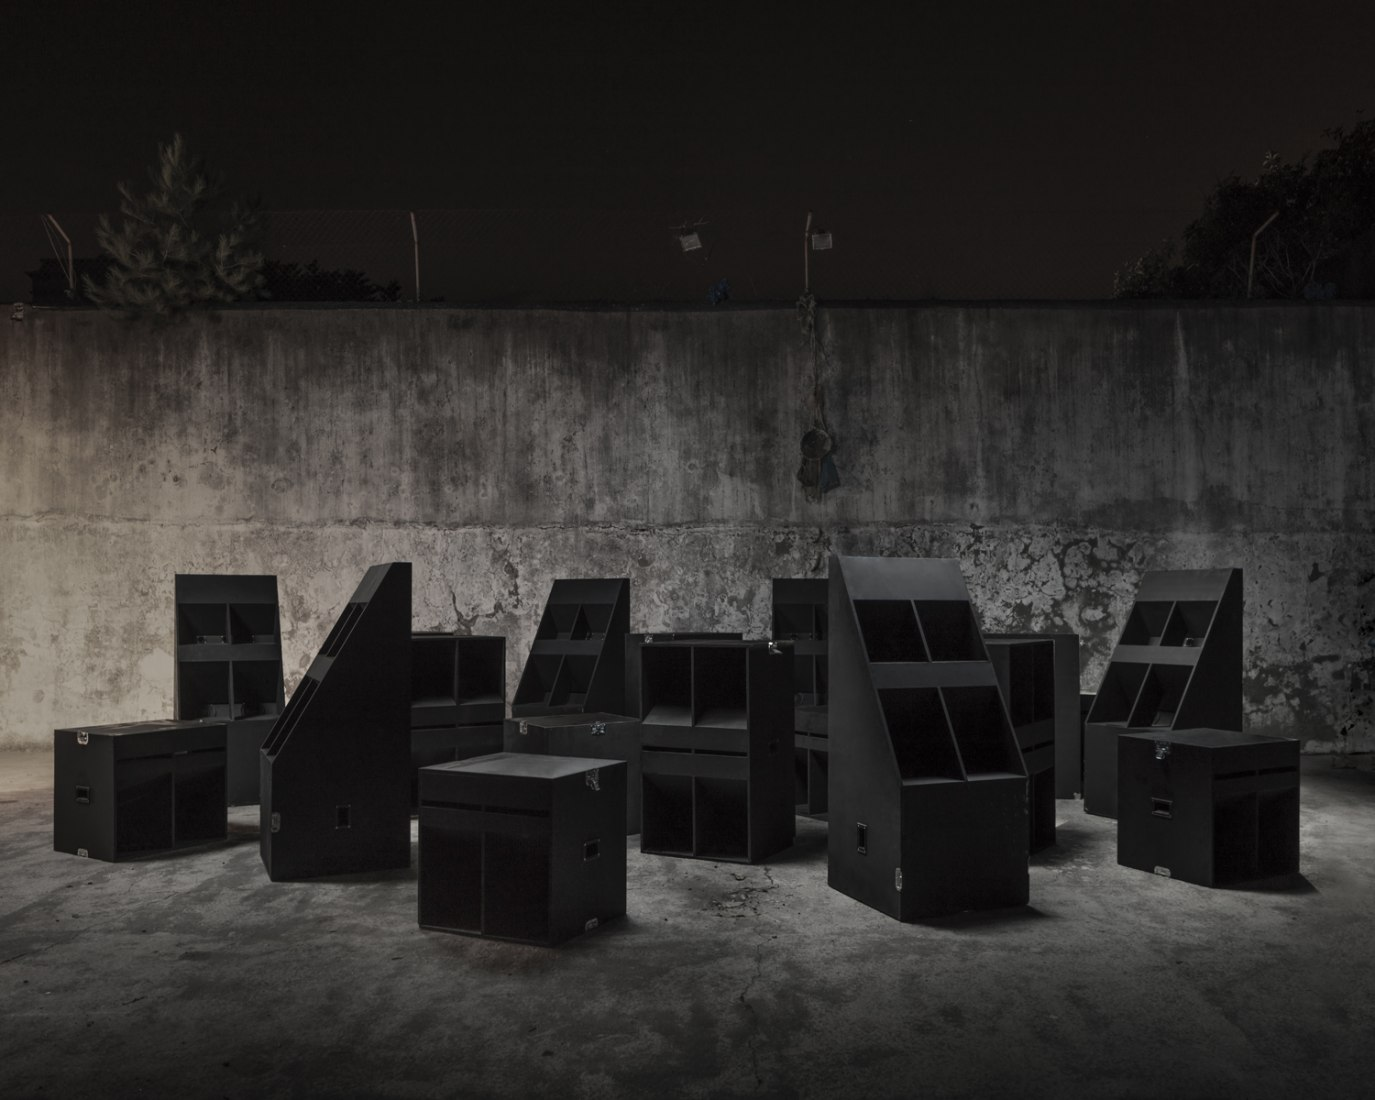 THE CLUB installation by BUREAU A. Photograph © Dylan Perrenoud.